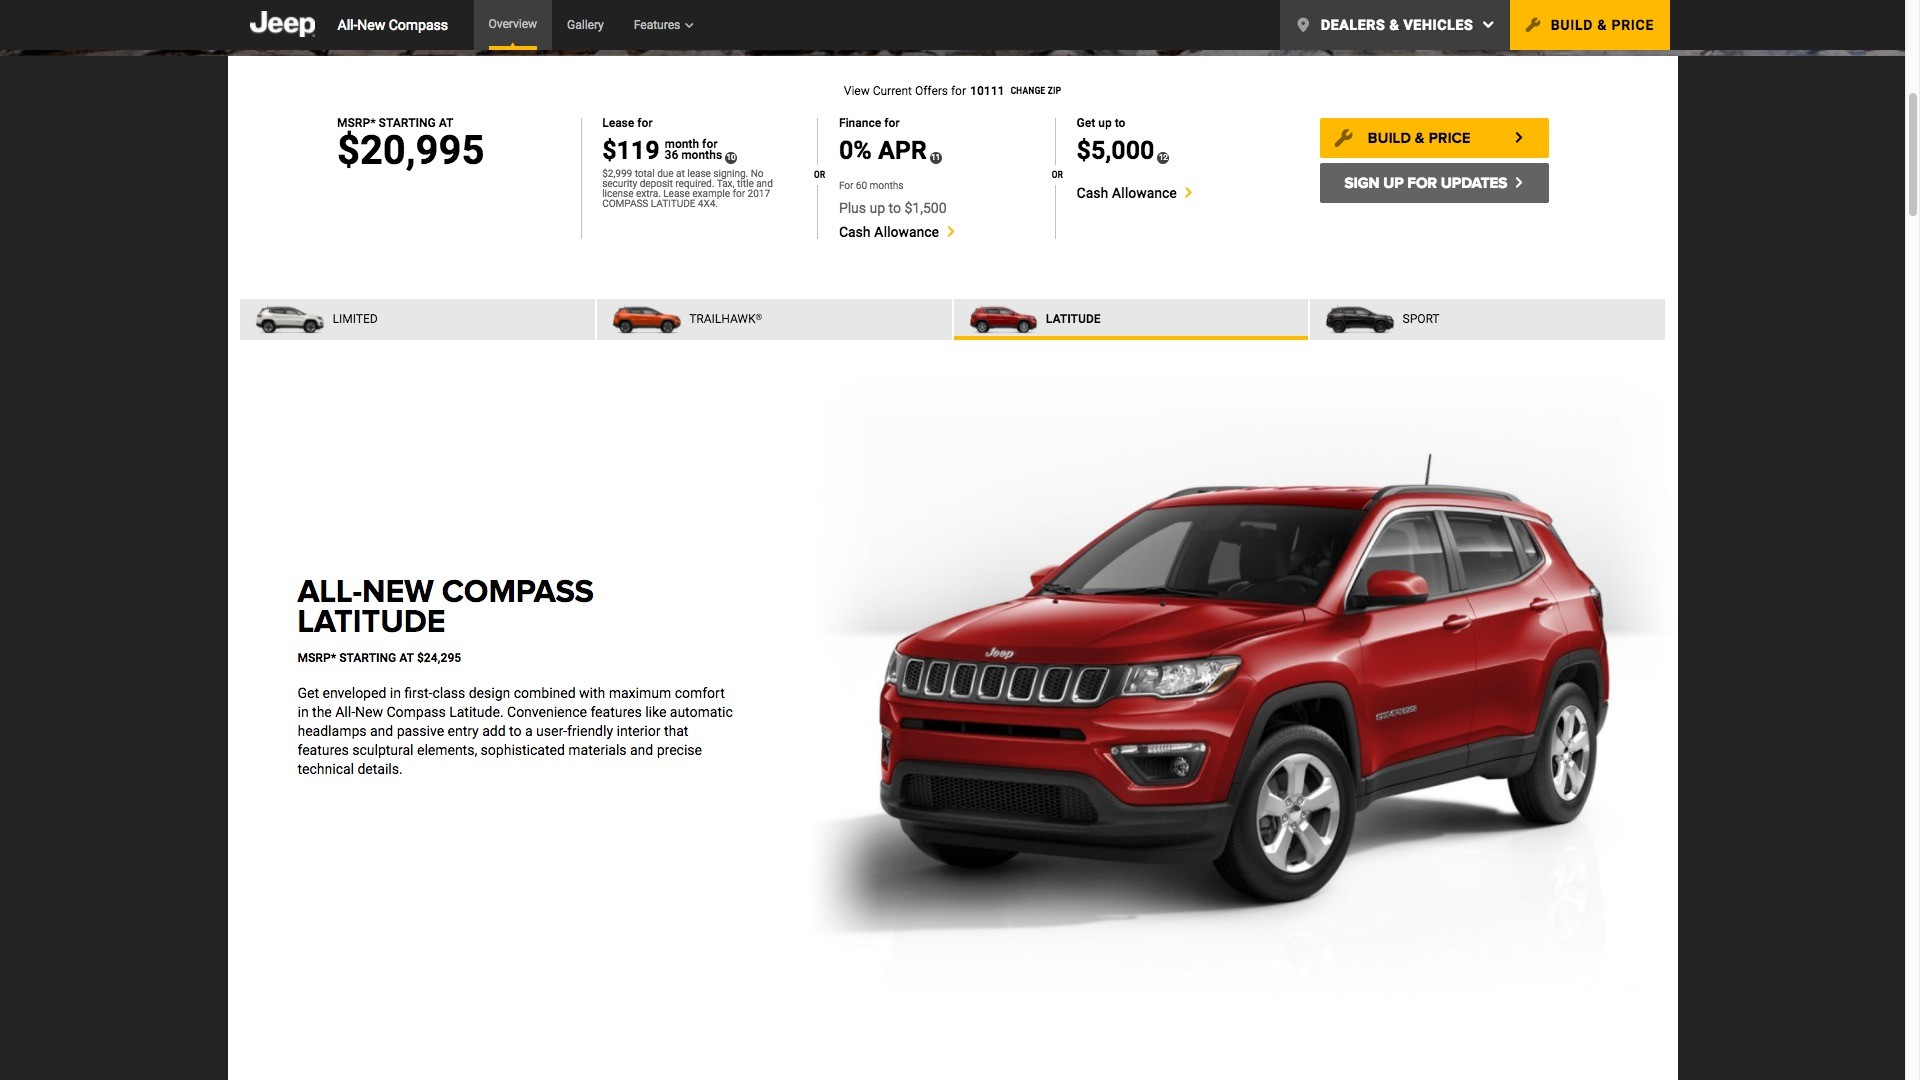 2017 Jeep Compass Priced From 20995 In The United States